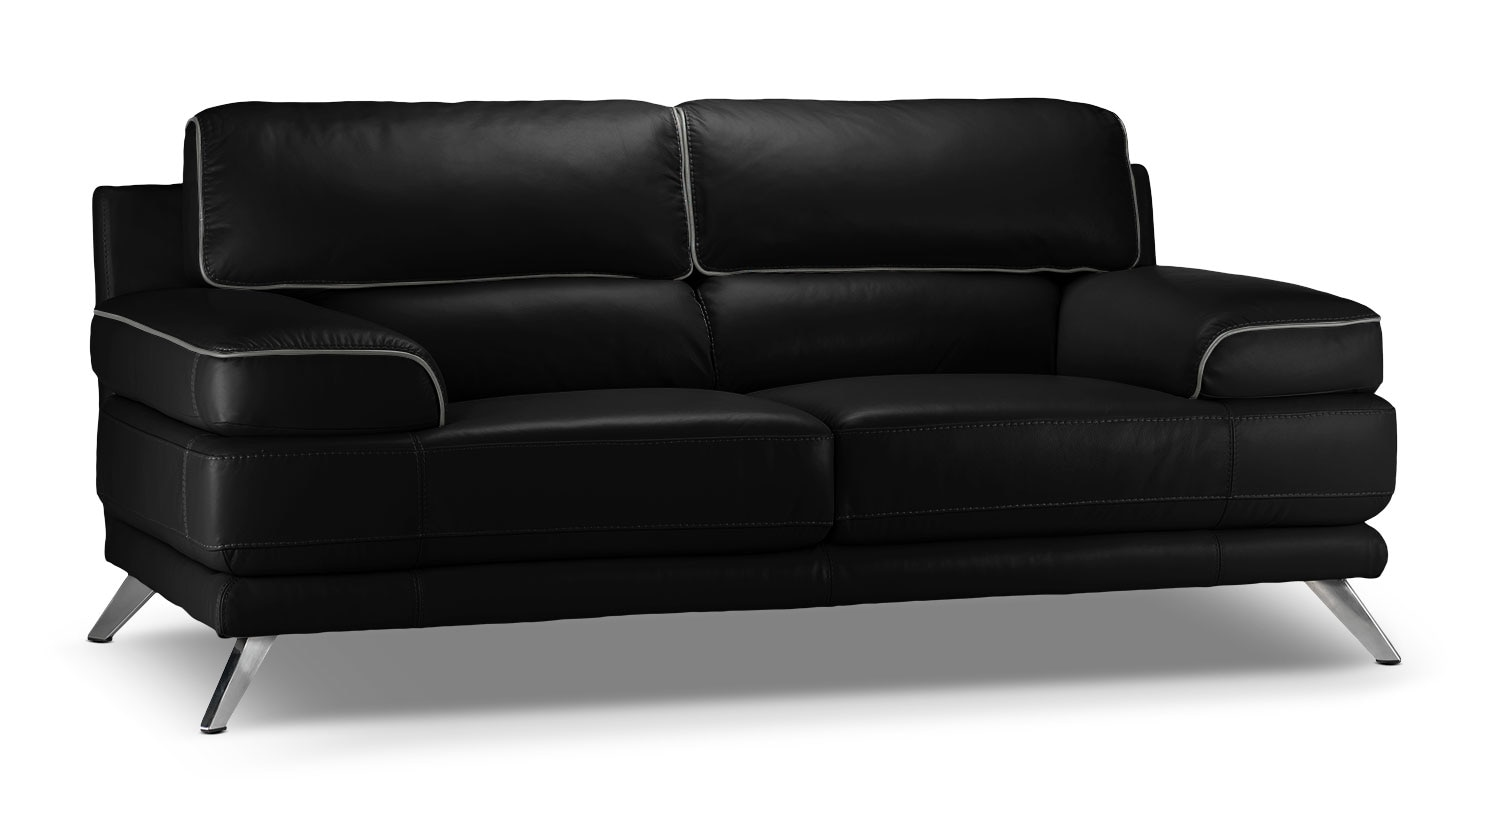 Sutton Loveseat - Black